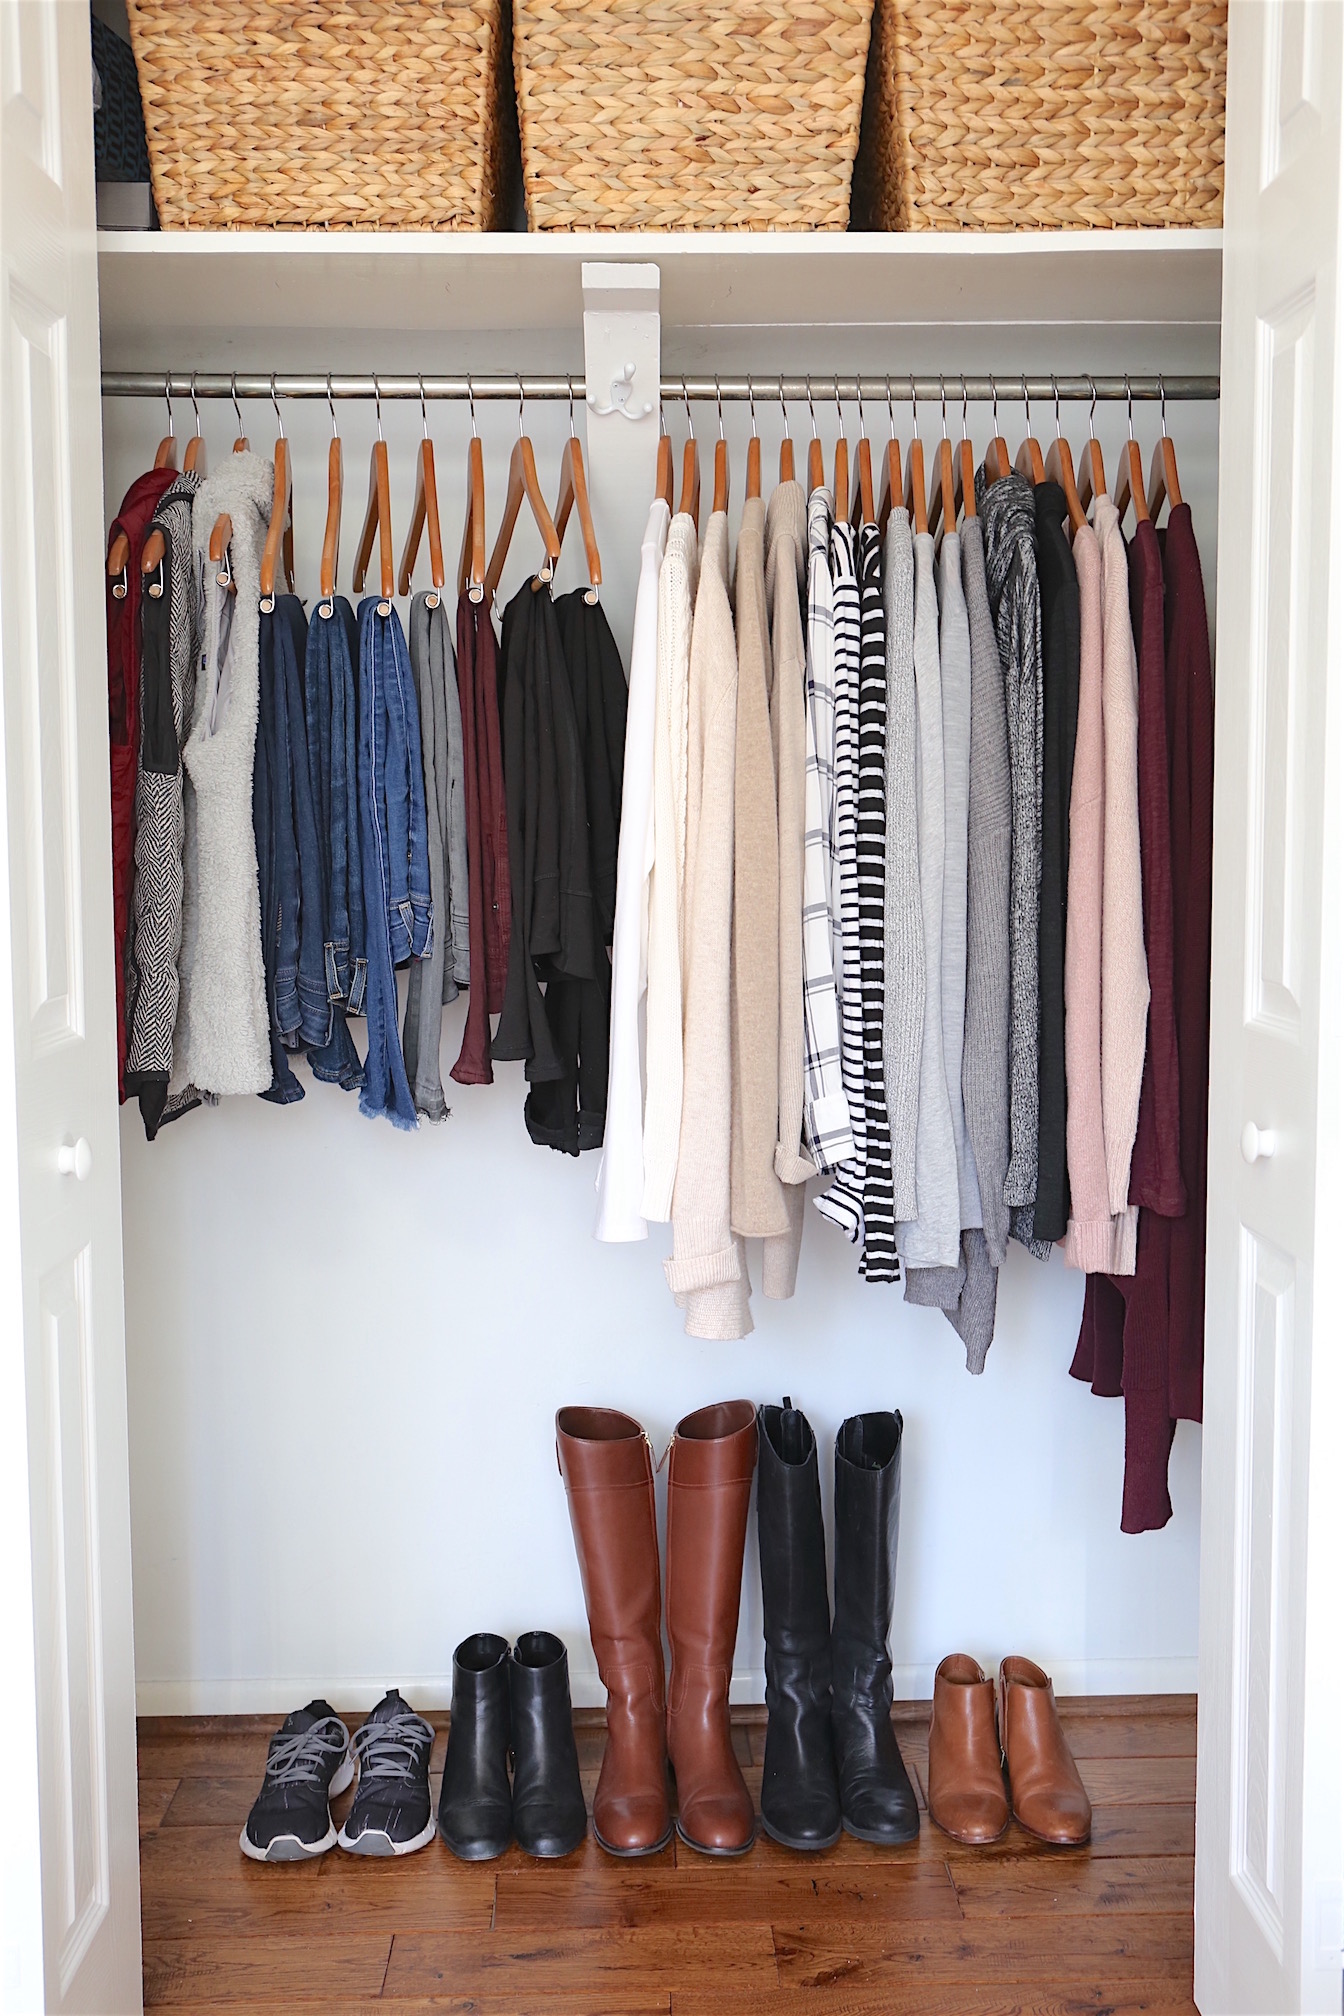 My Winter 2017 Capsule Wardrobe Classy Yet Trendy